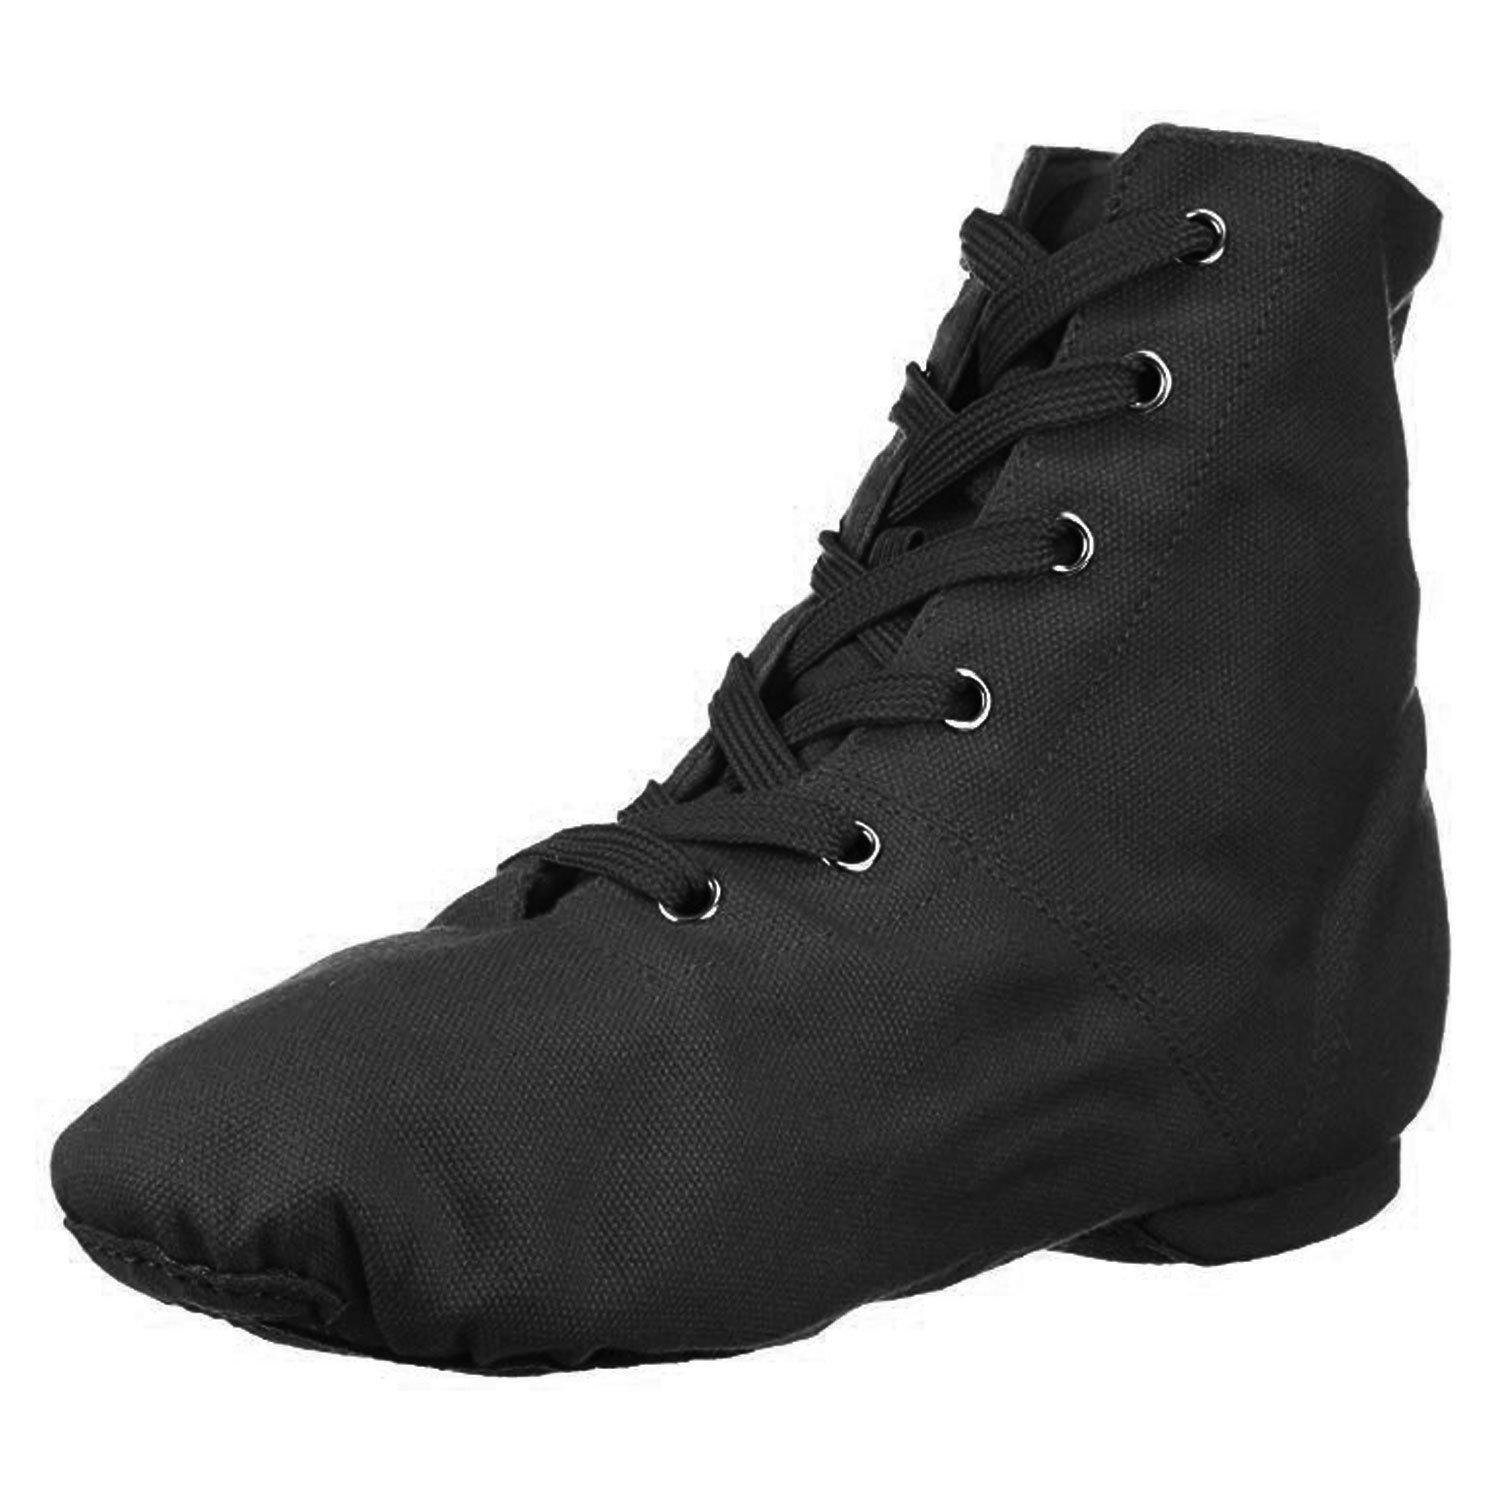 Danzcue Adult Canvas Jazz Shoes - Click Image to Close